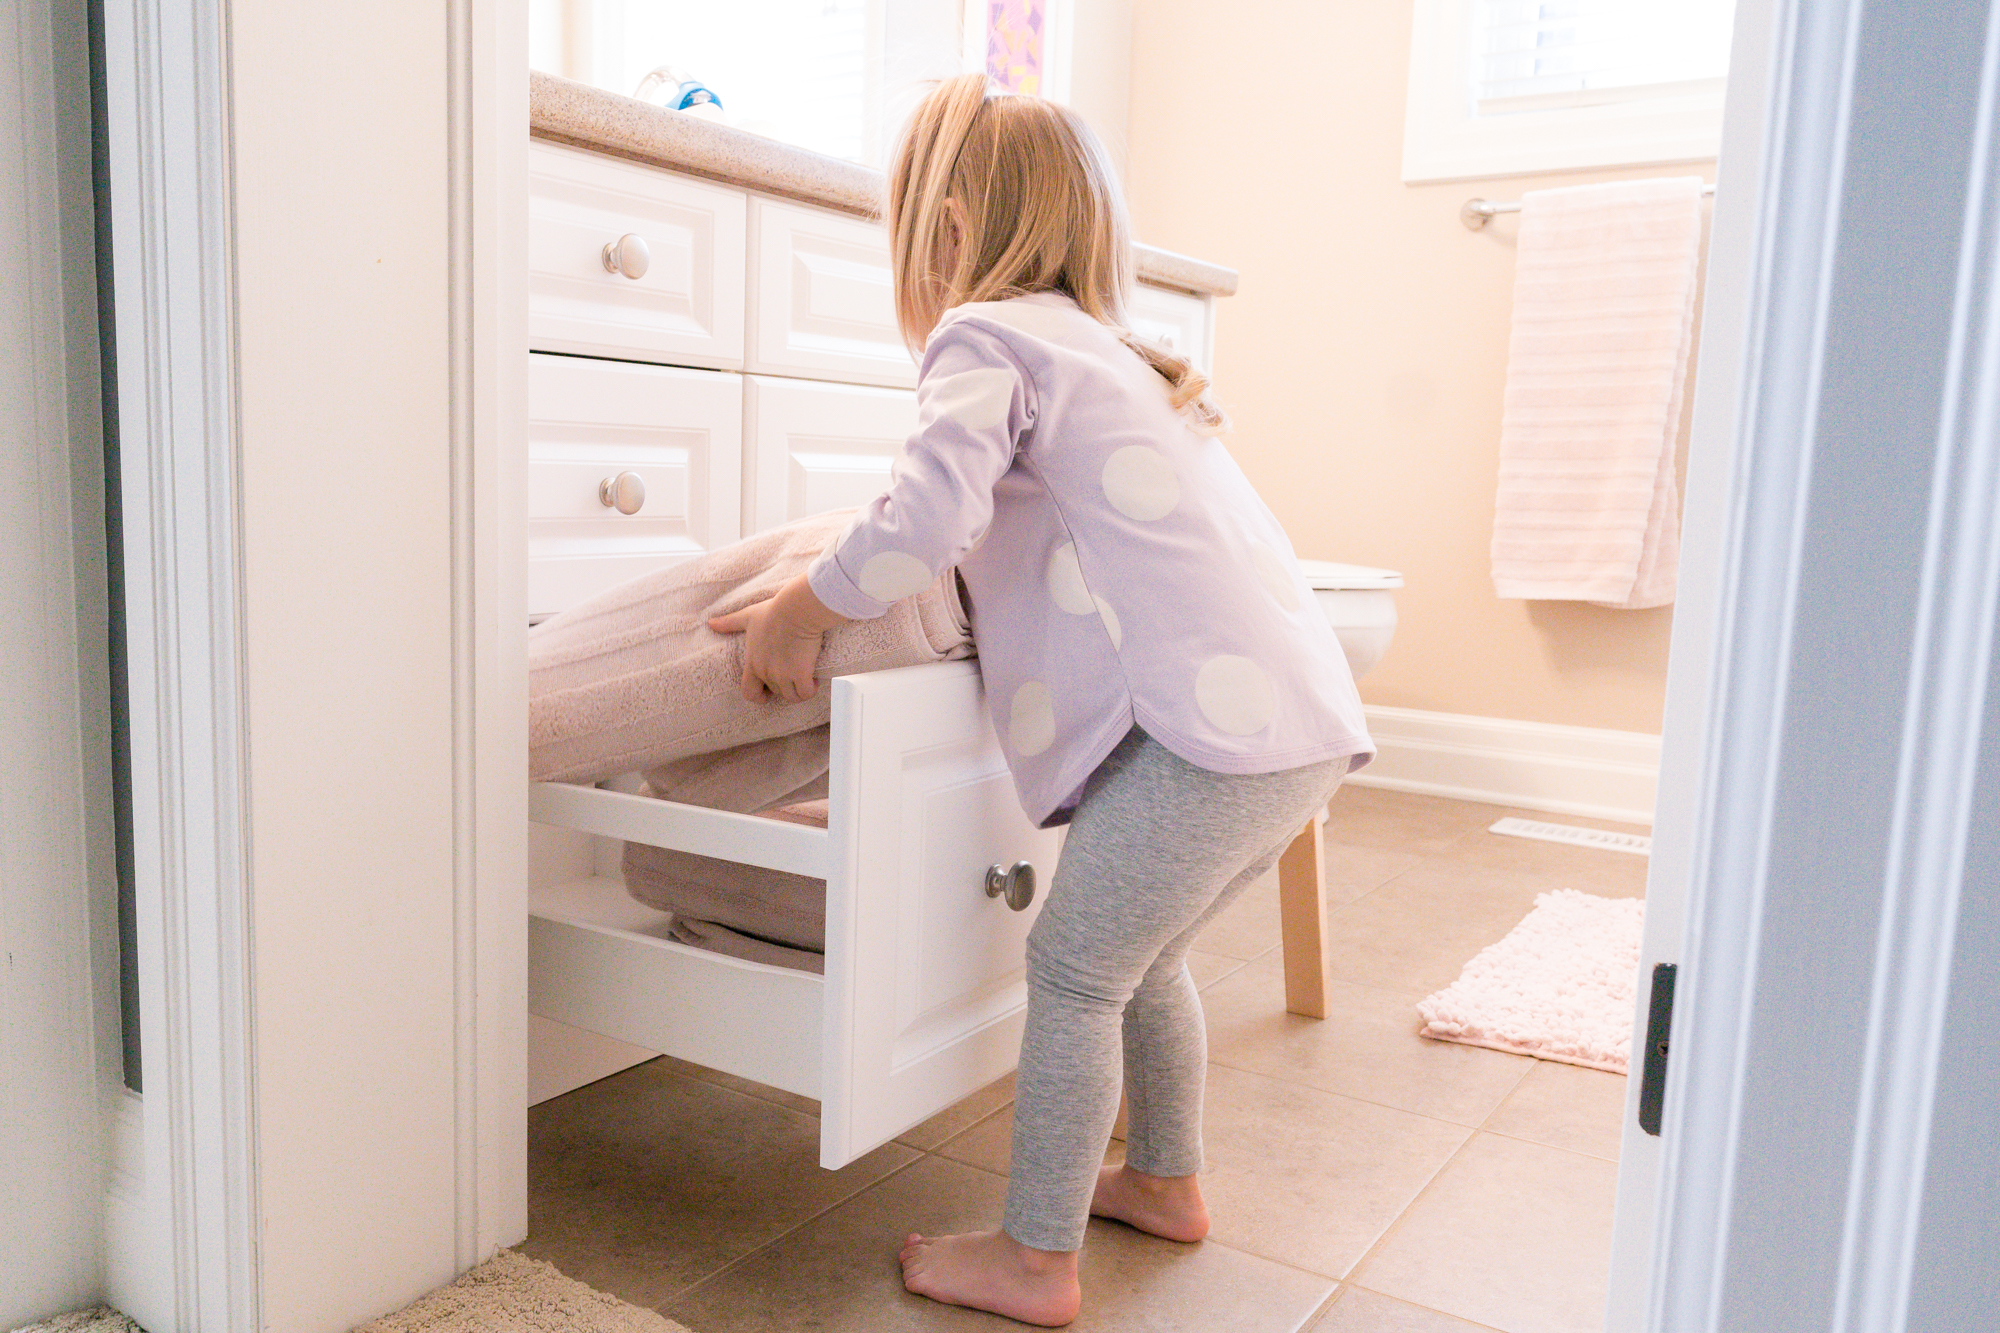 Young child putting towels away in a drawer in a bathroom